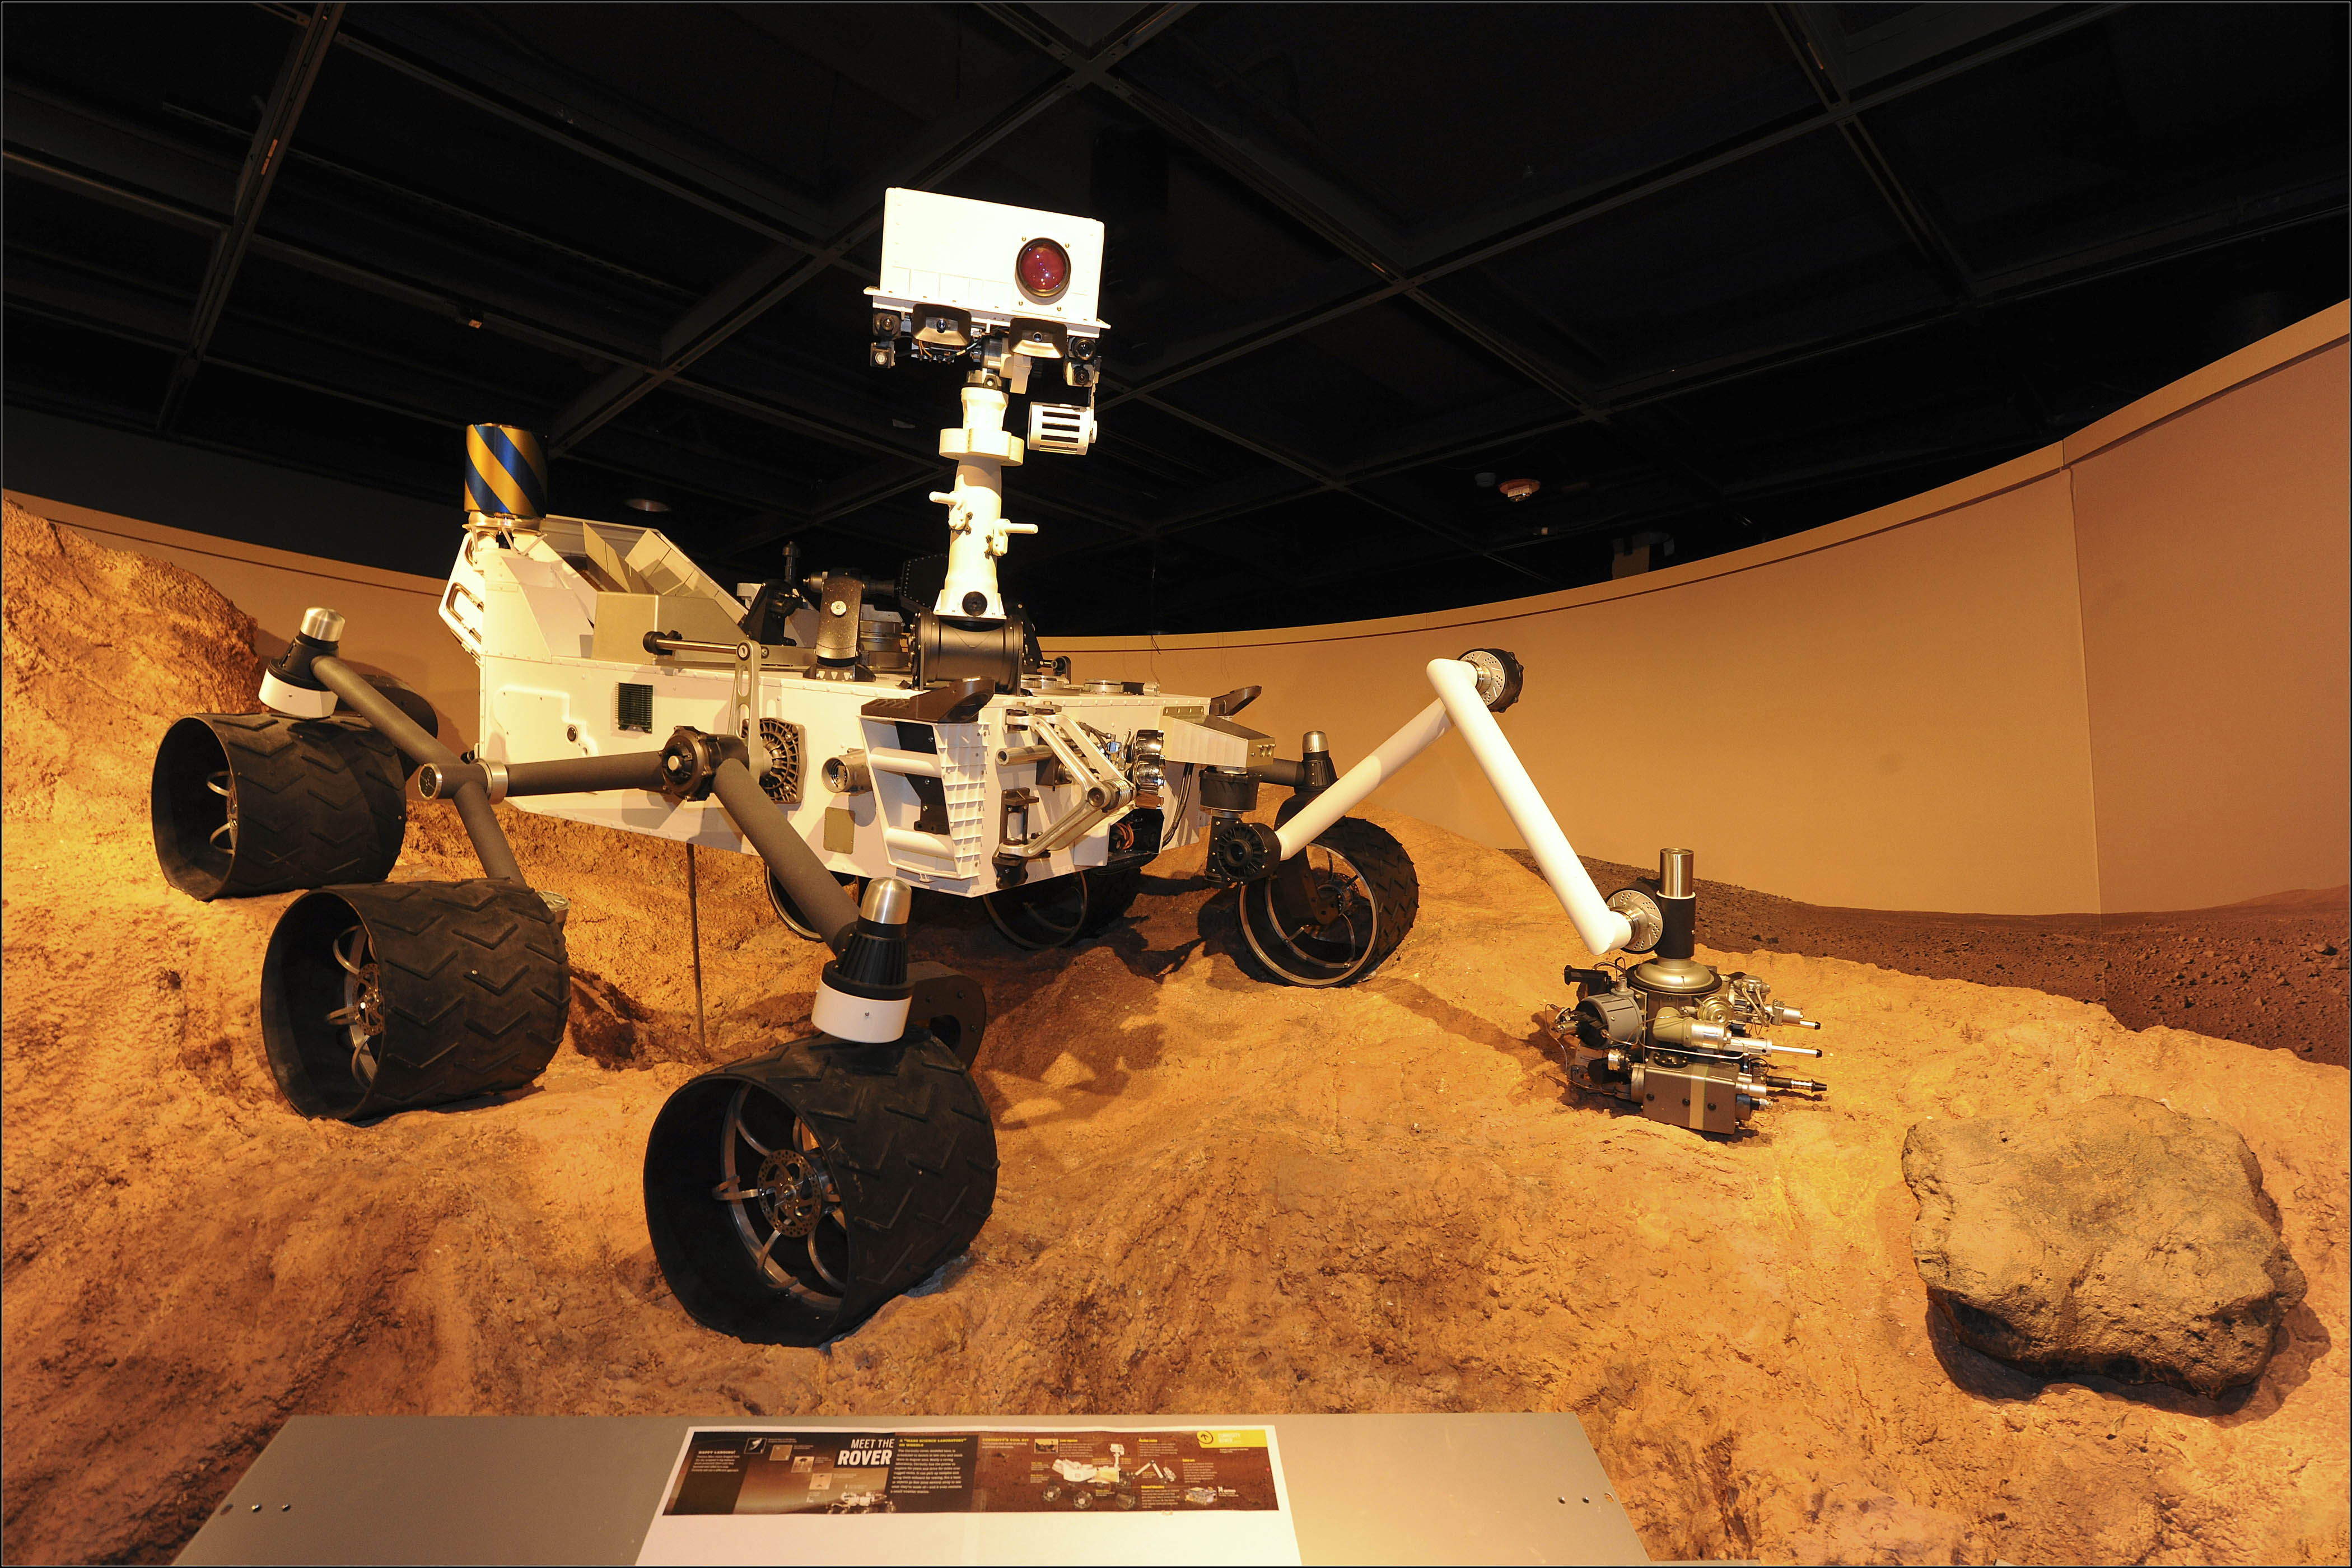 NASA's Huge Mars Rover Curiosity: 11 Amazing Facts